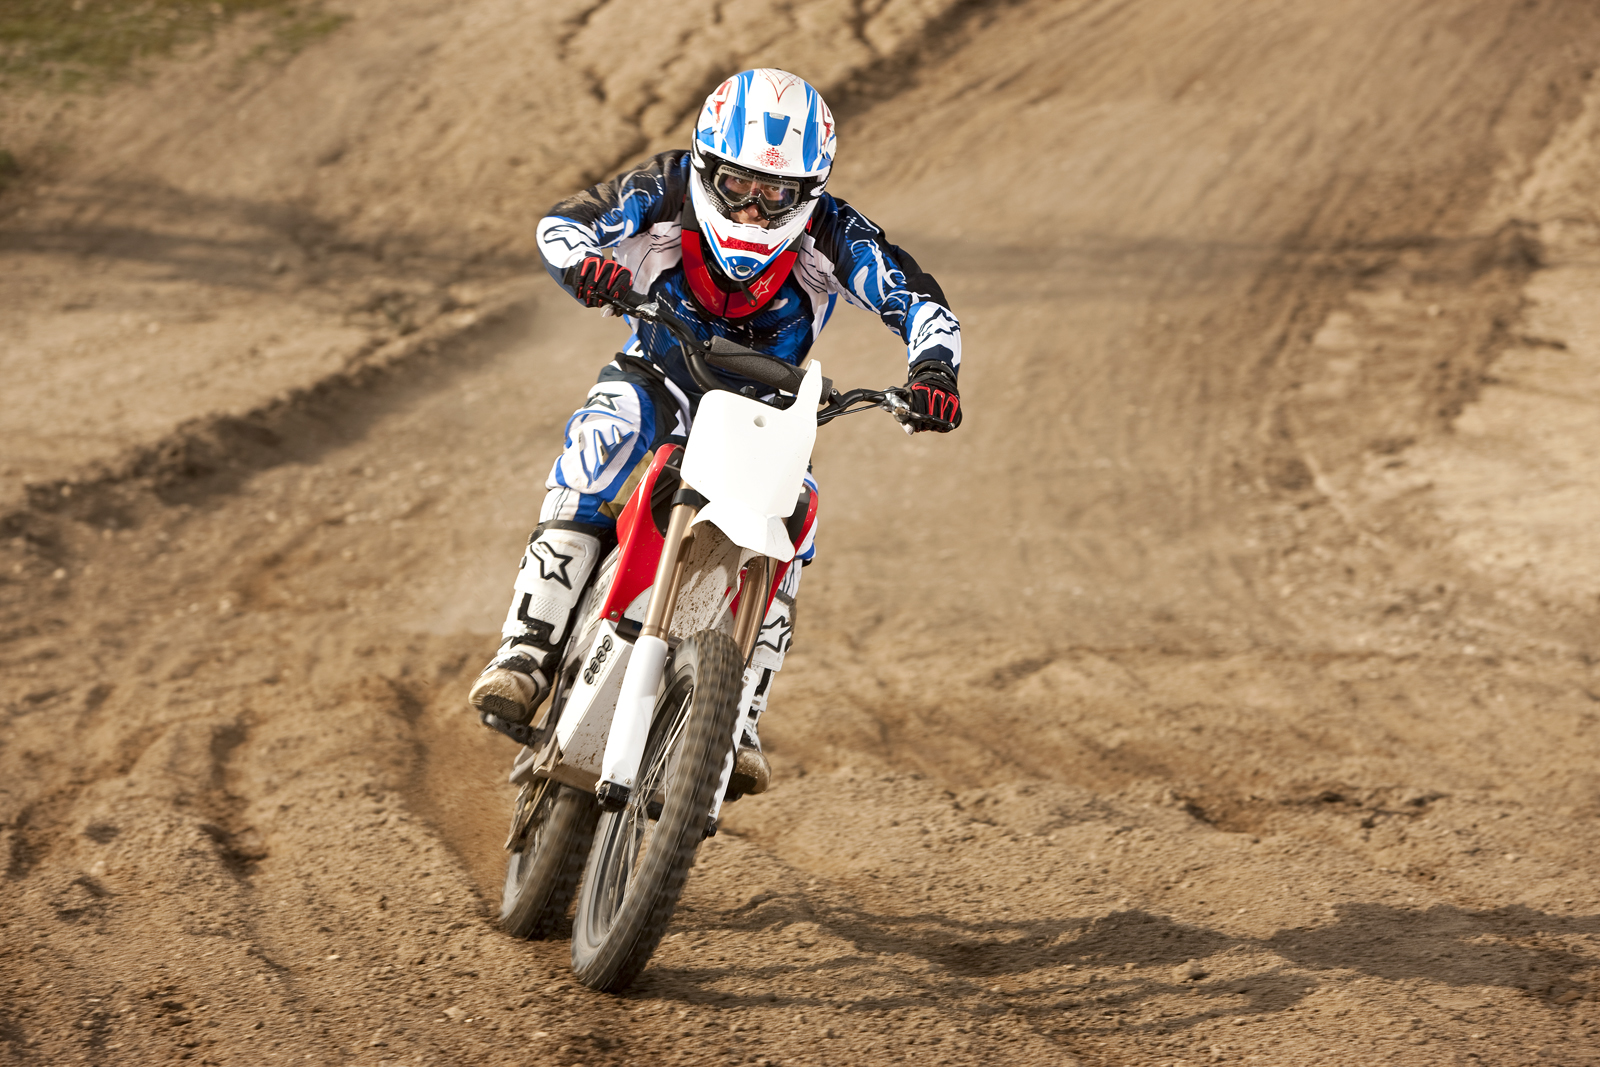 '.2010 Zero MX Electric Motorcycle: Zaca Station - Charging Downhill.'